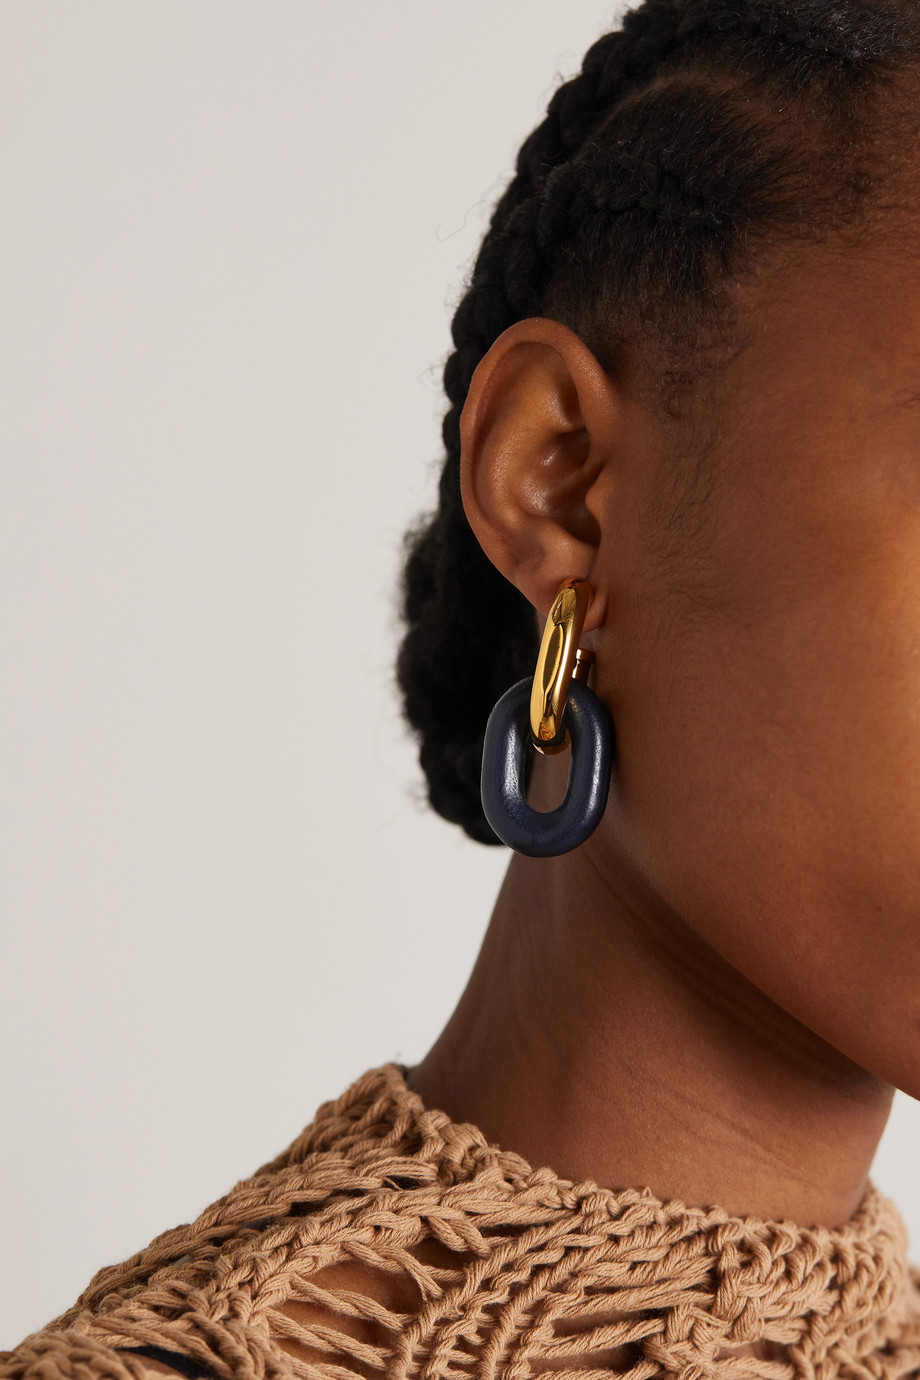 Paco Rabanne XL Link gold-tone and leather earrings